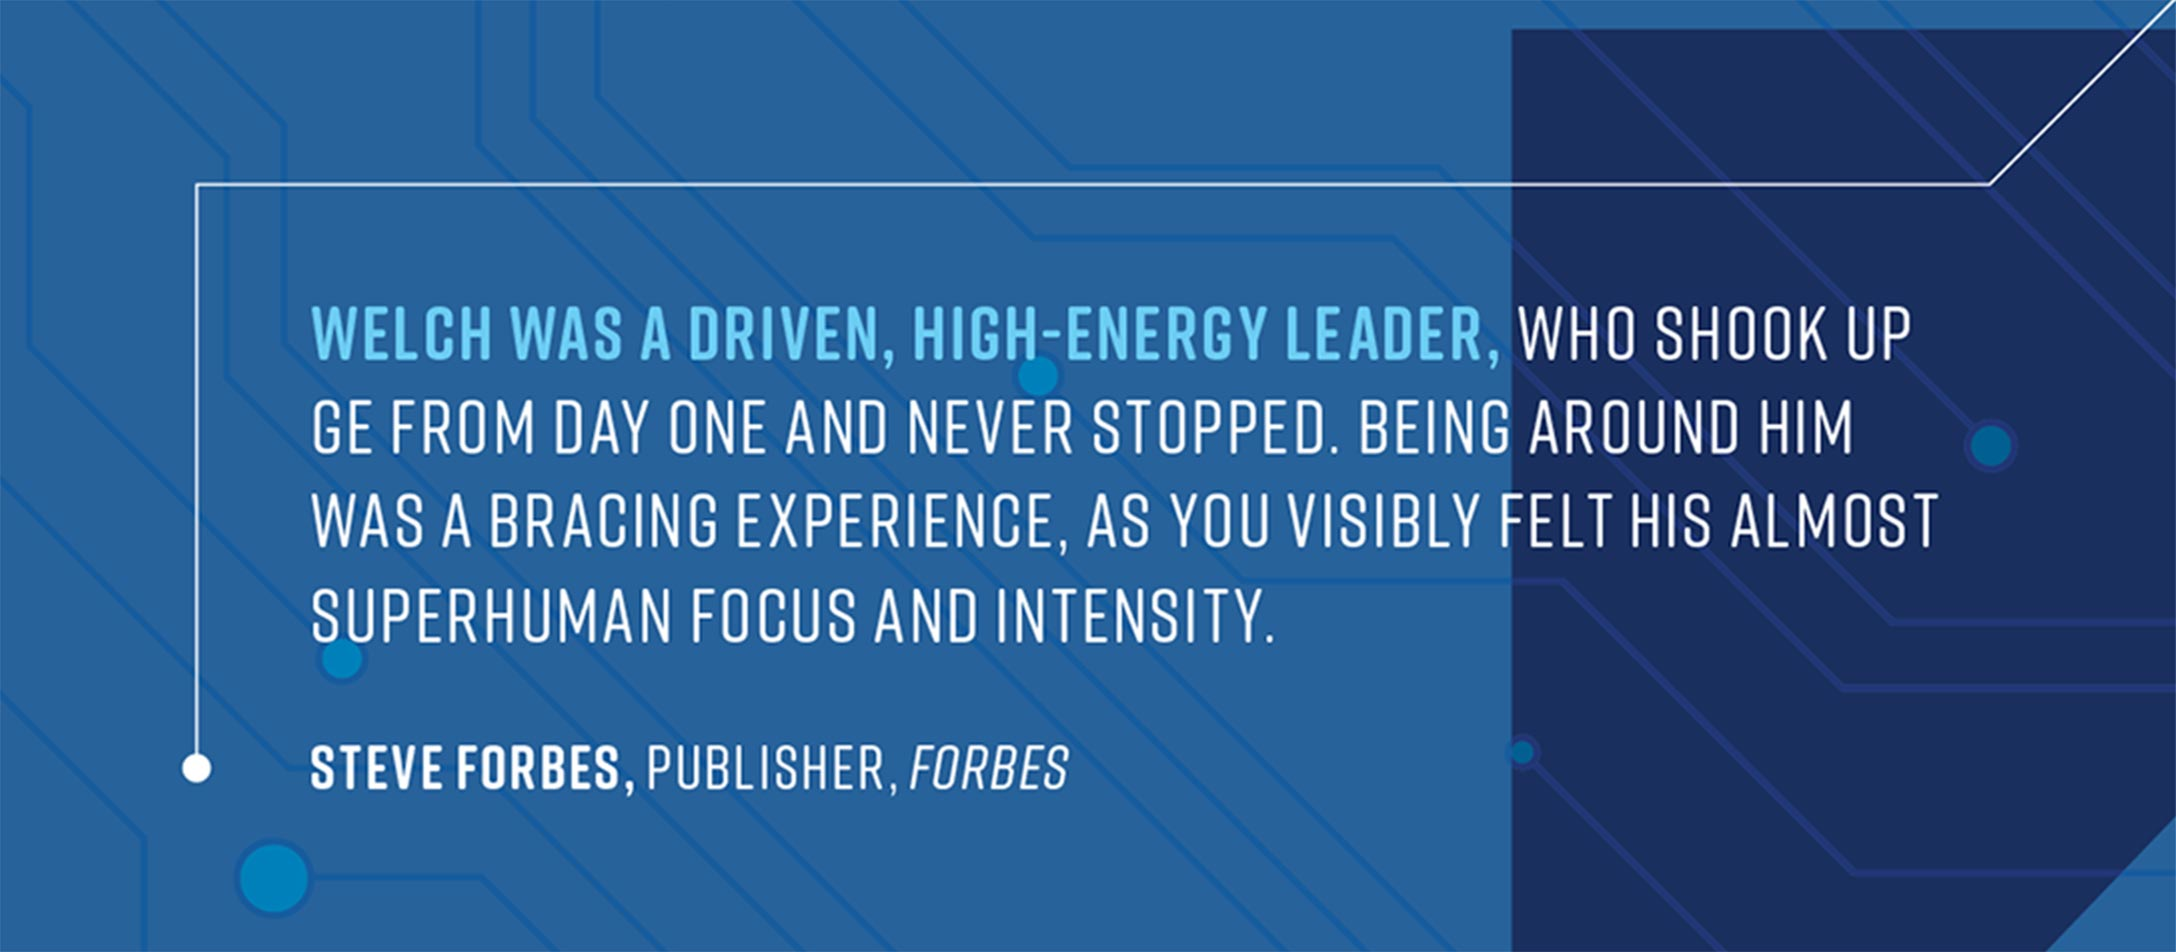 Welch was a driven, high energy leader who shook up GE from day one and never stopped. Being around him was a bracing experience, as you visibly felt his almost superhuman focus and intensity. – Steve Forbes, publisher, Forbes